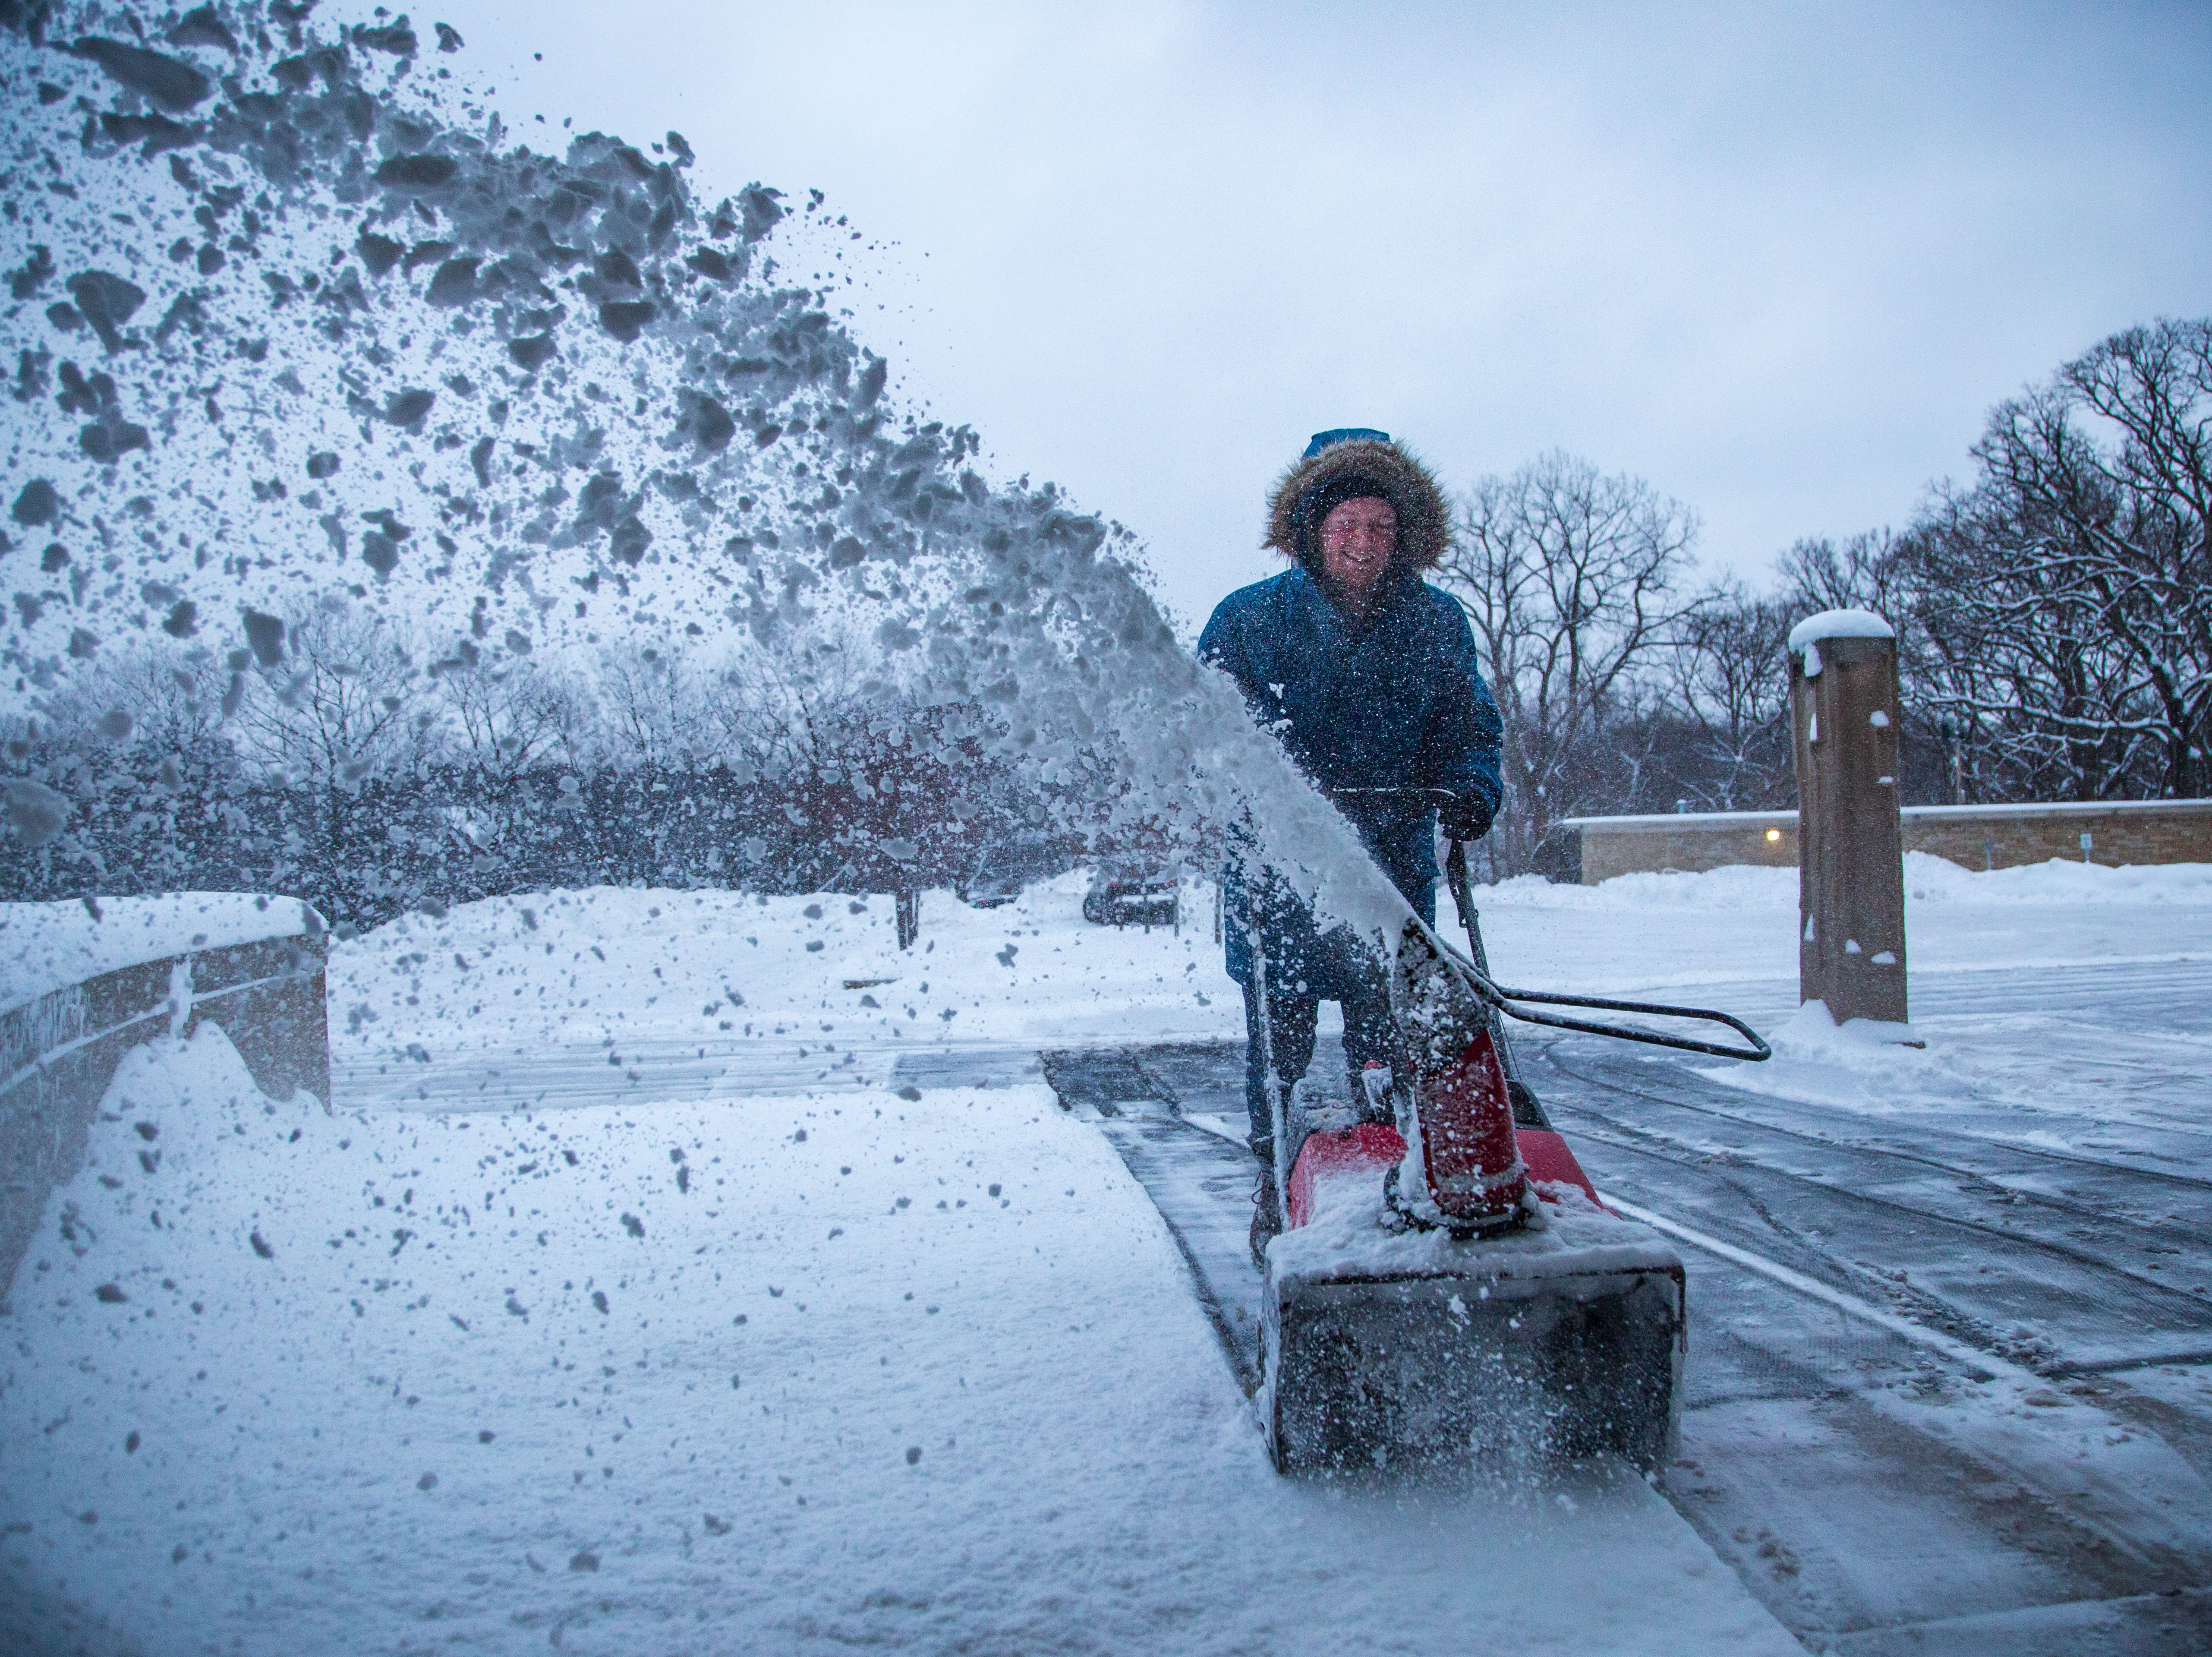 Matthew Lewin, facilities technician with the Des Moines Arts Center, clears a fresh blanket of snow Tuesday, Feb. 12, 2019.